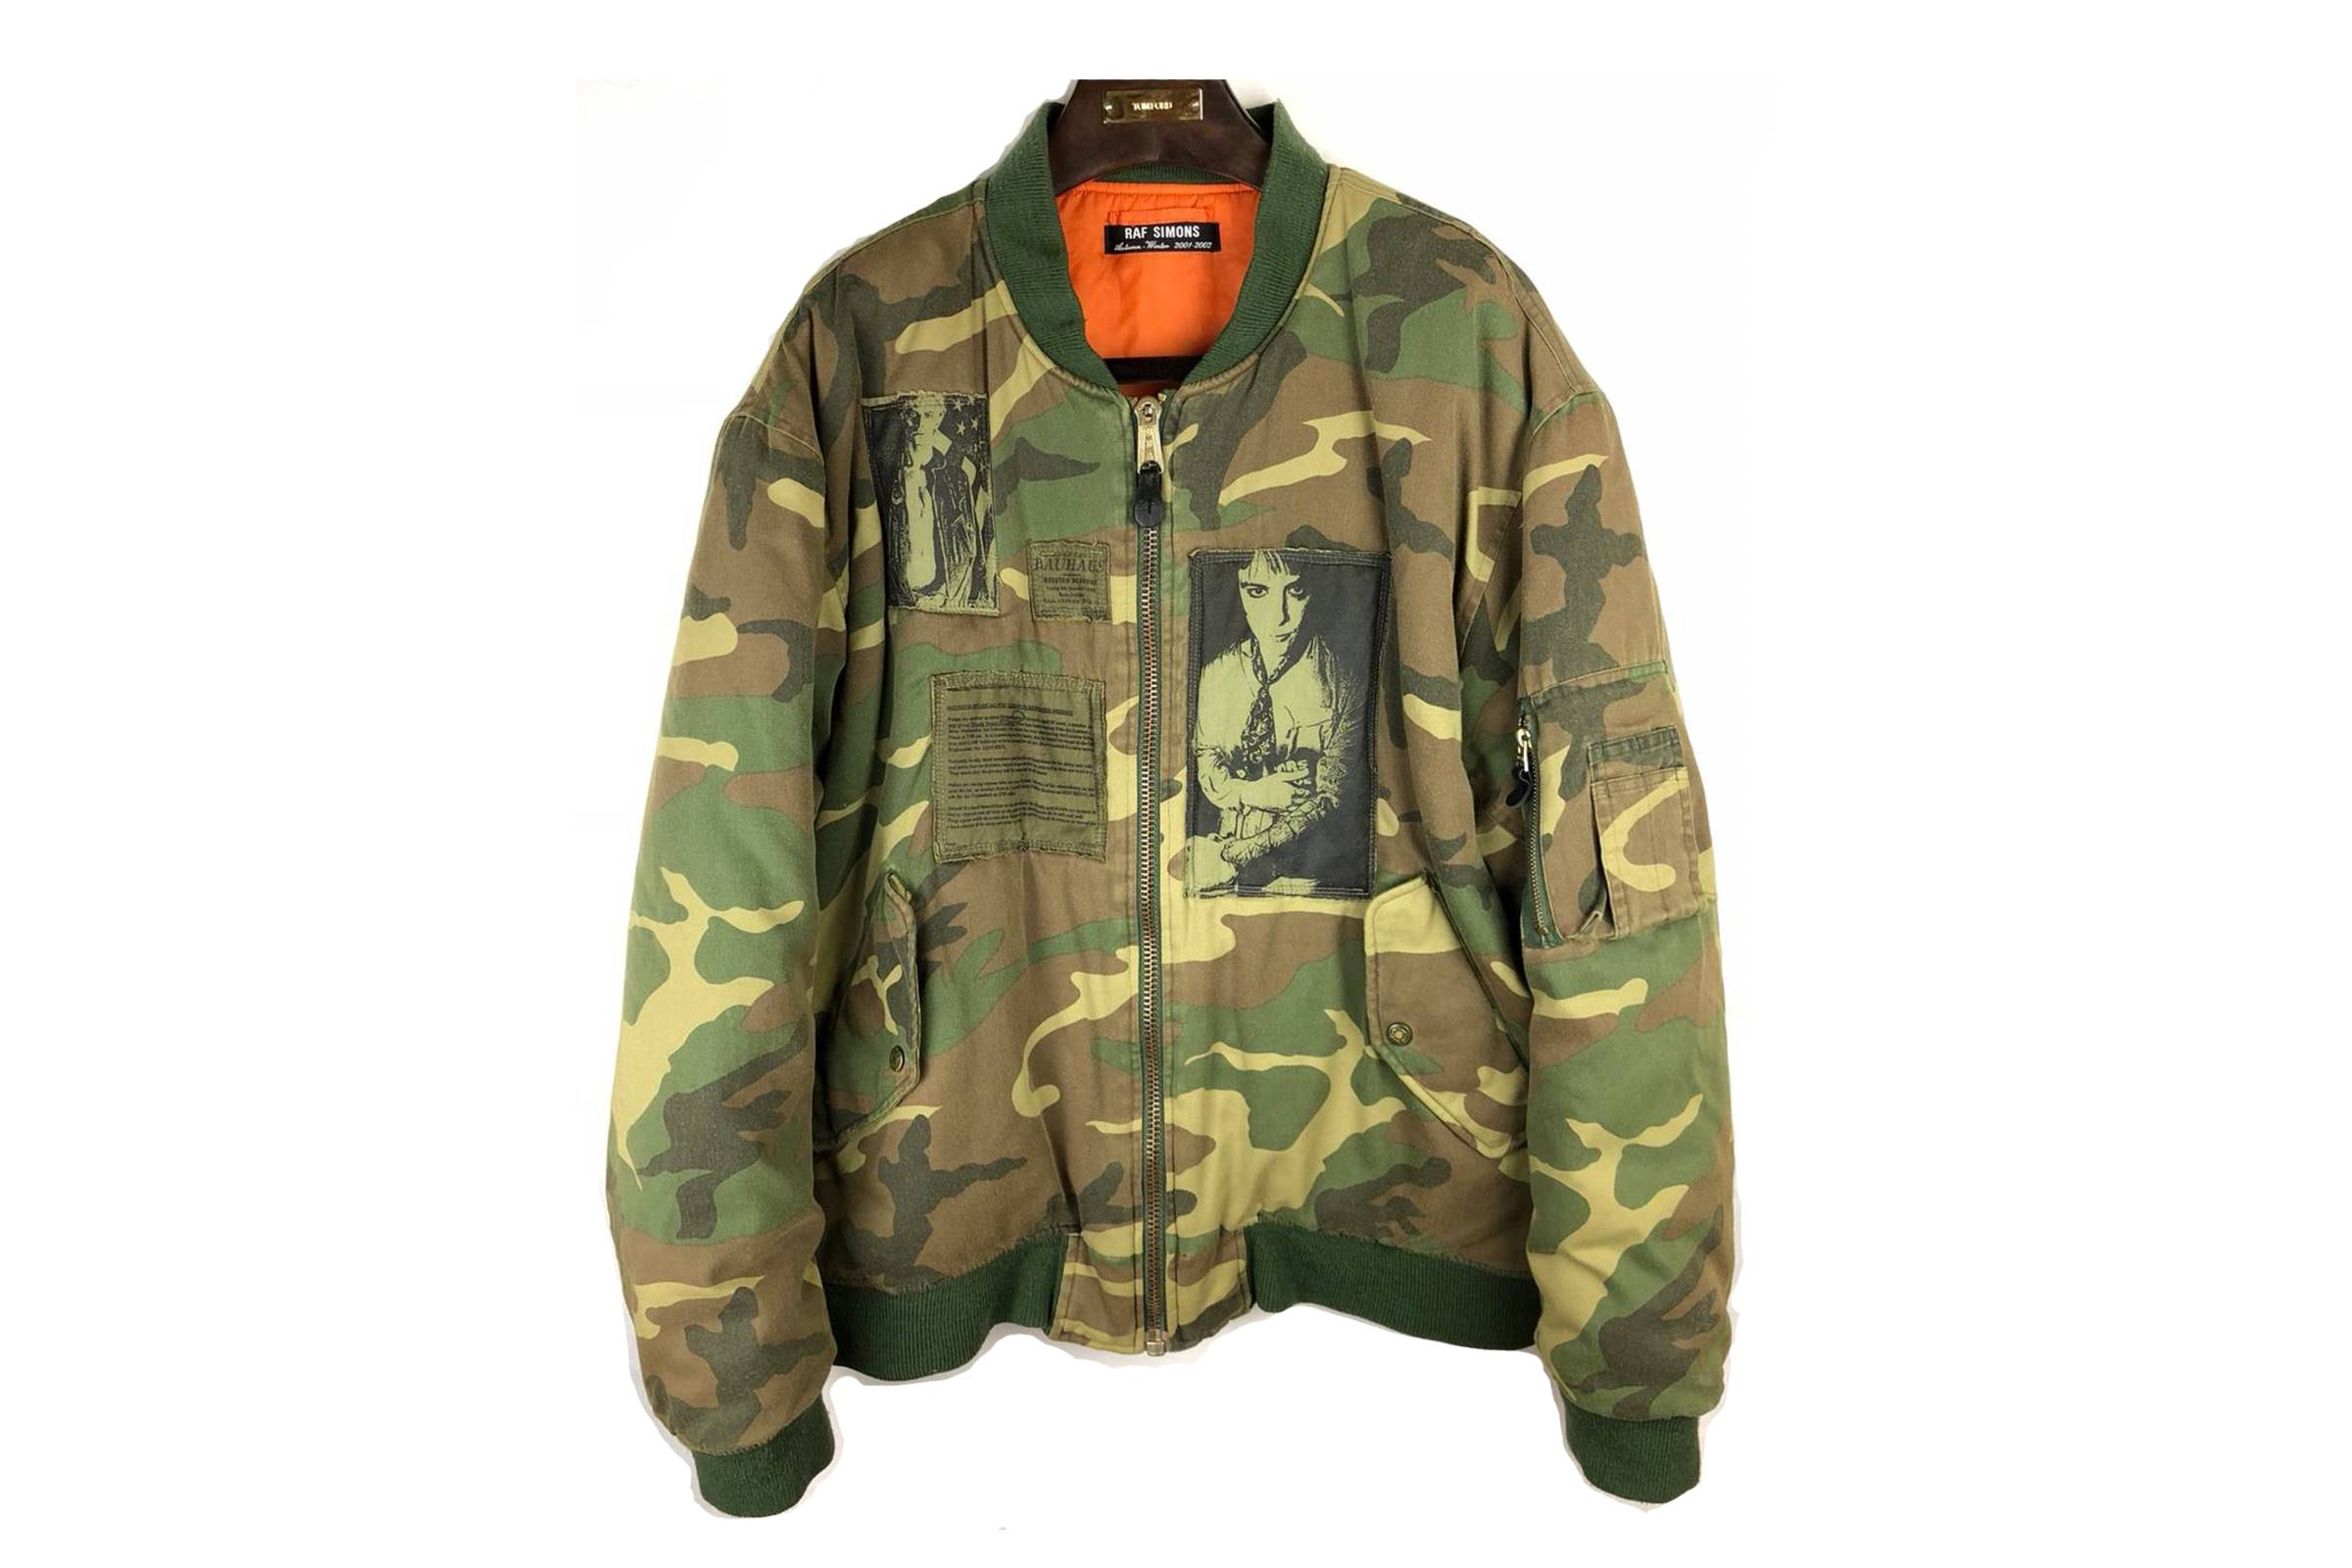 4be1b4b12fd99 When most people think about camouflage they tend to think about a specific  family of patterns: woodland camo. There are myriad varieties of woodland  camo, ...